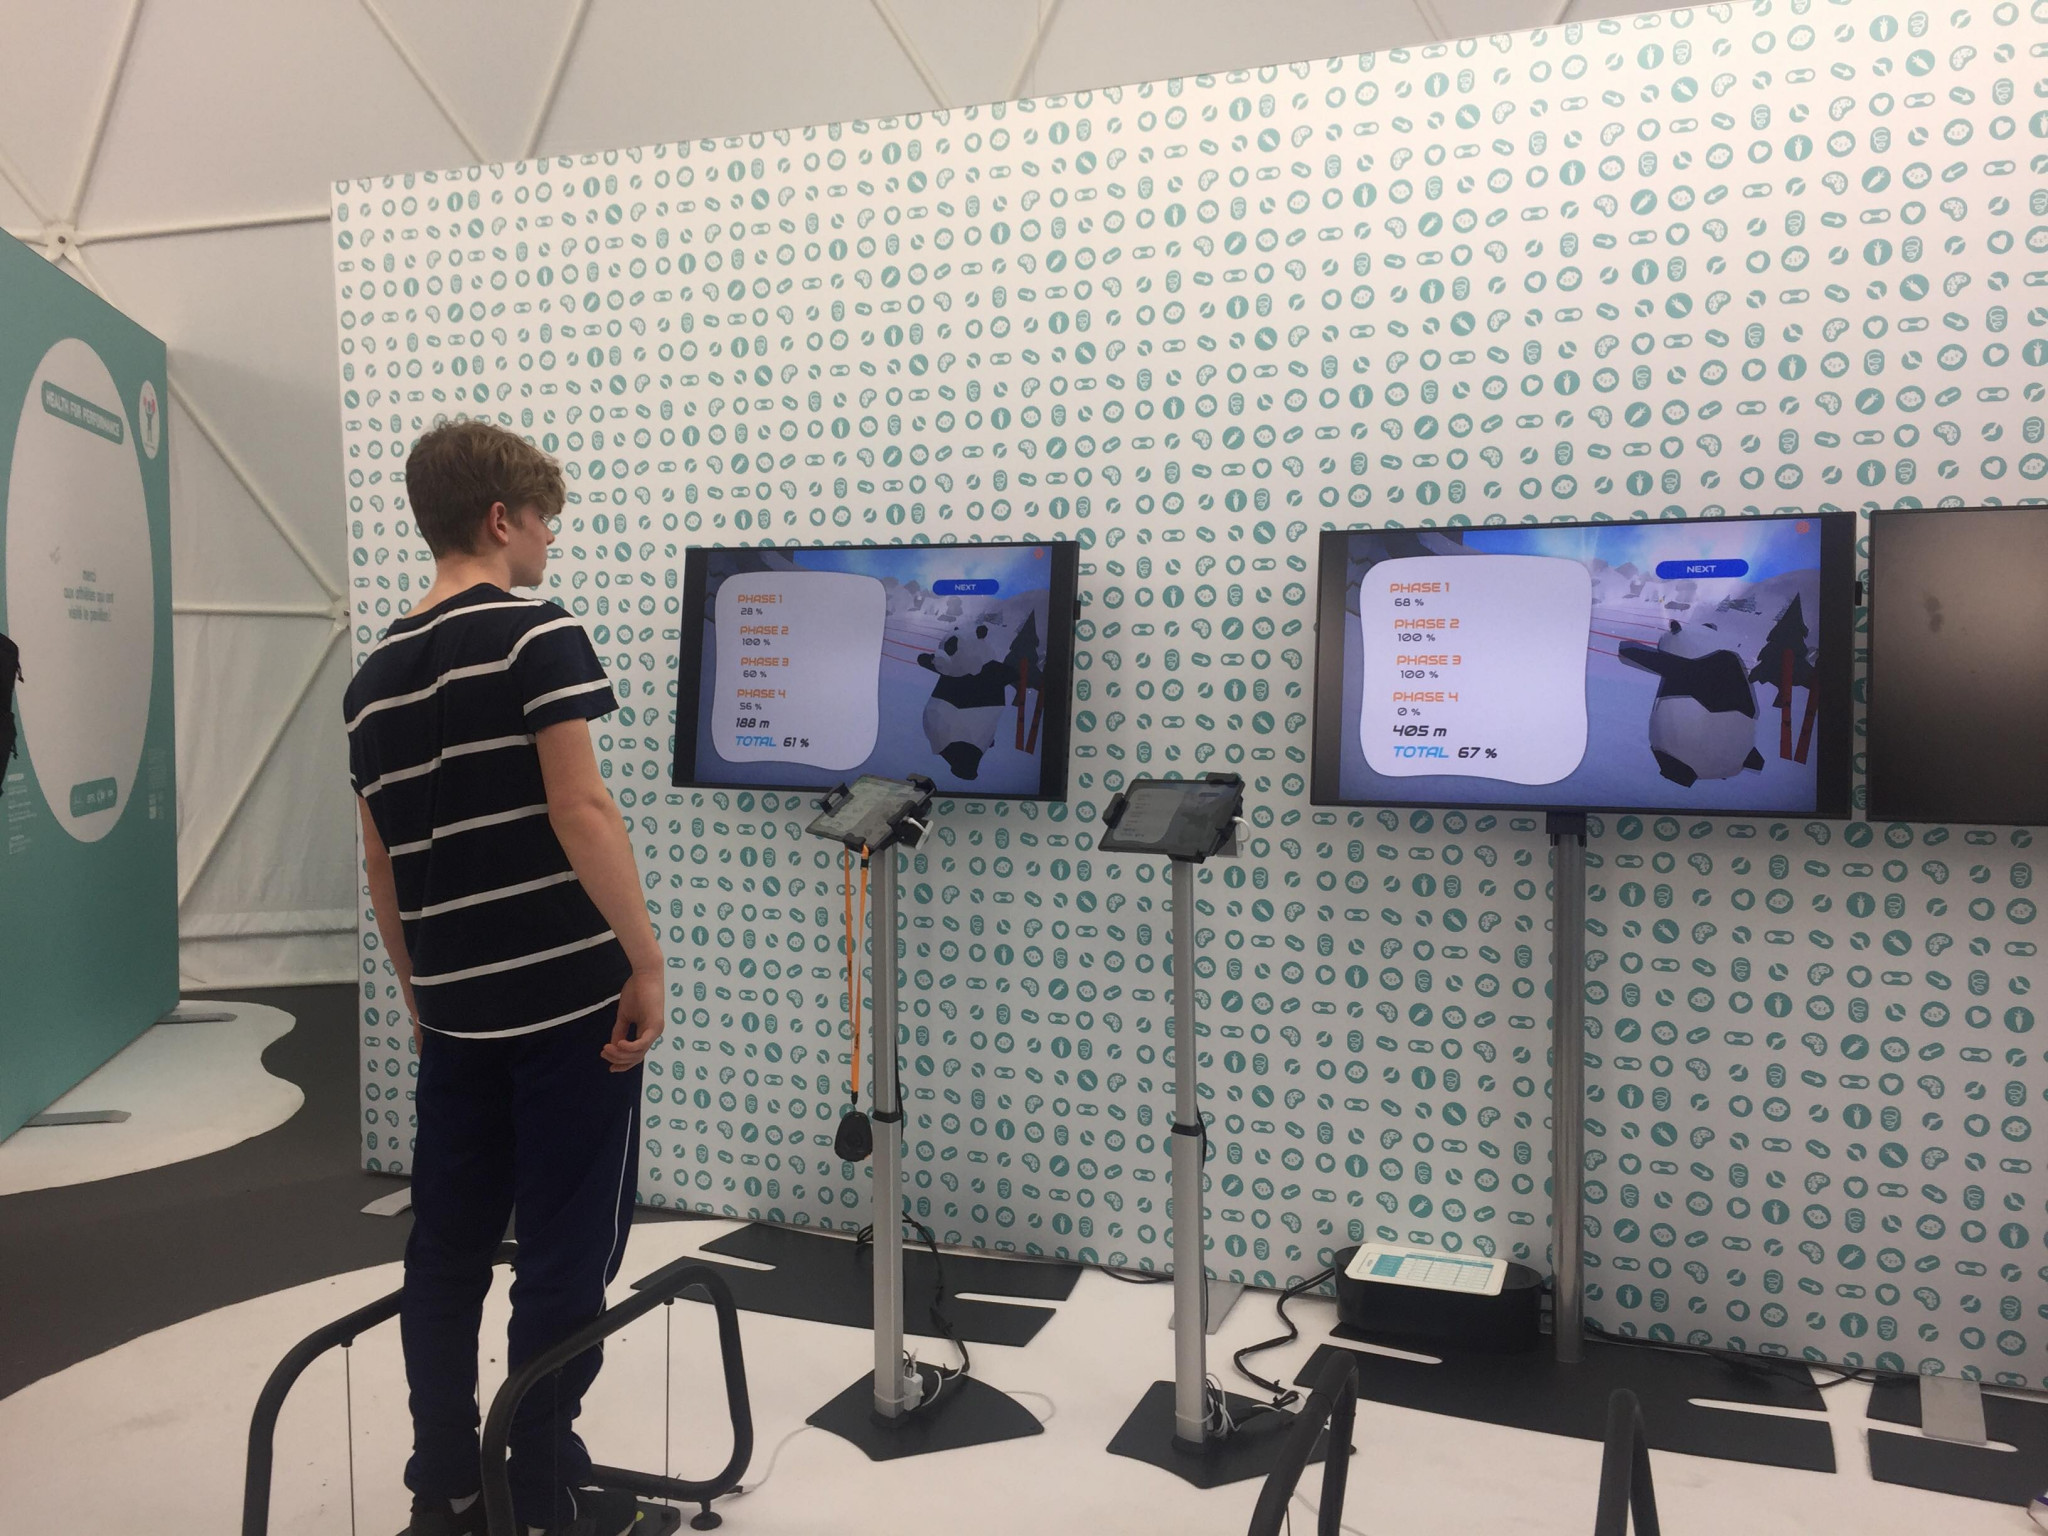 Users of the Health for Performance application can test their balance and coordination on connected treadmills ©ITG